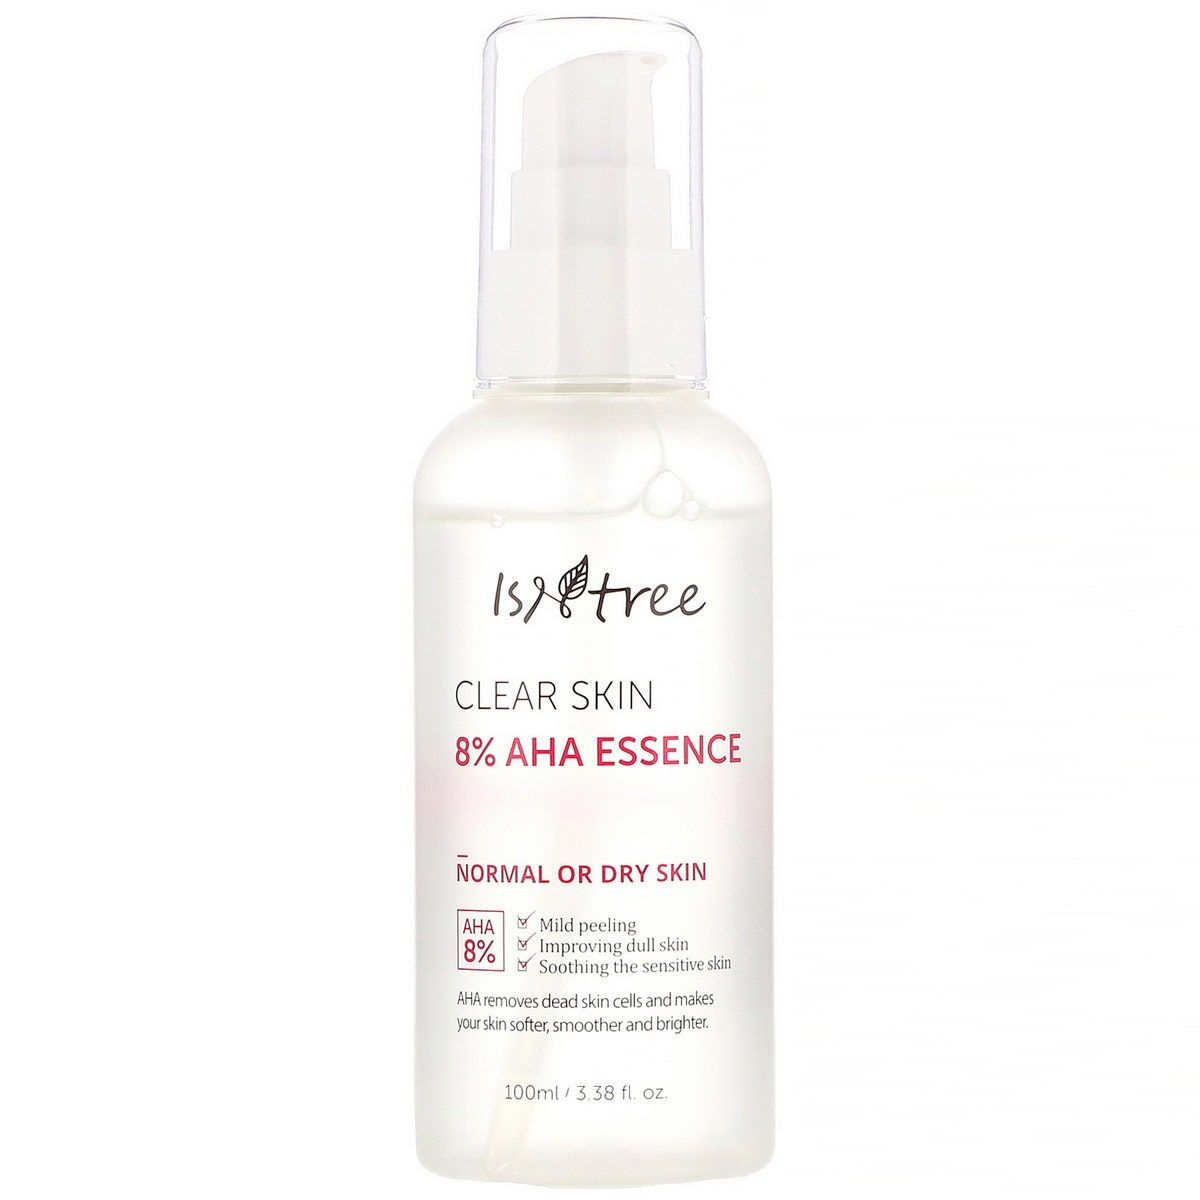 The 19 Best Facial Essences For Plump Glowing Skin In 2020 Essence Beauty Marketing Dull Skin